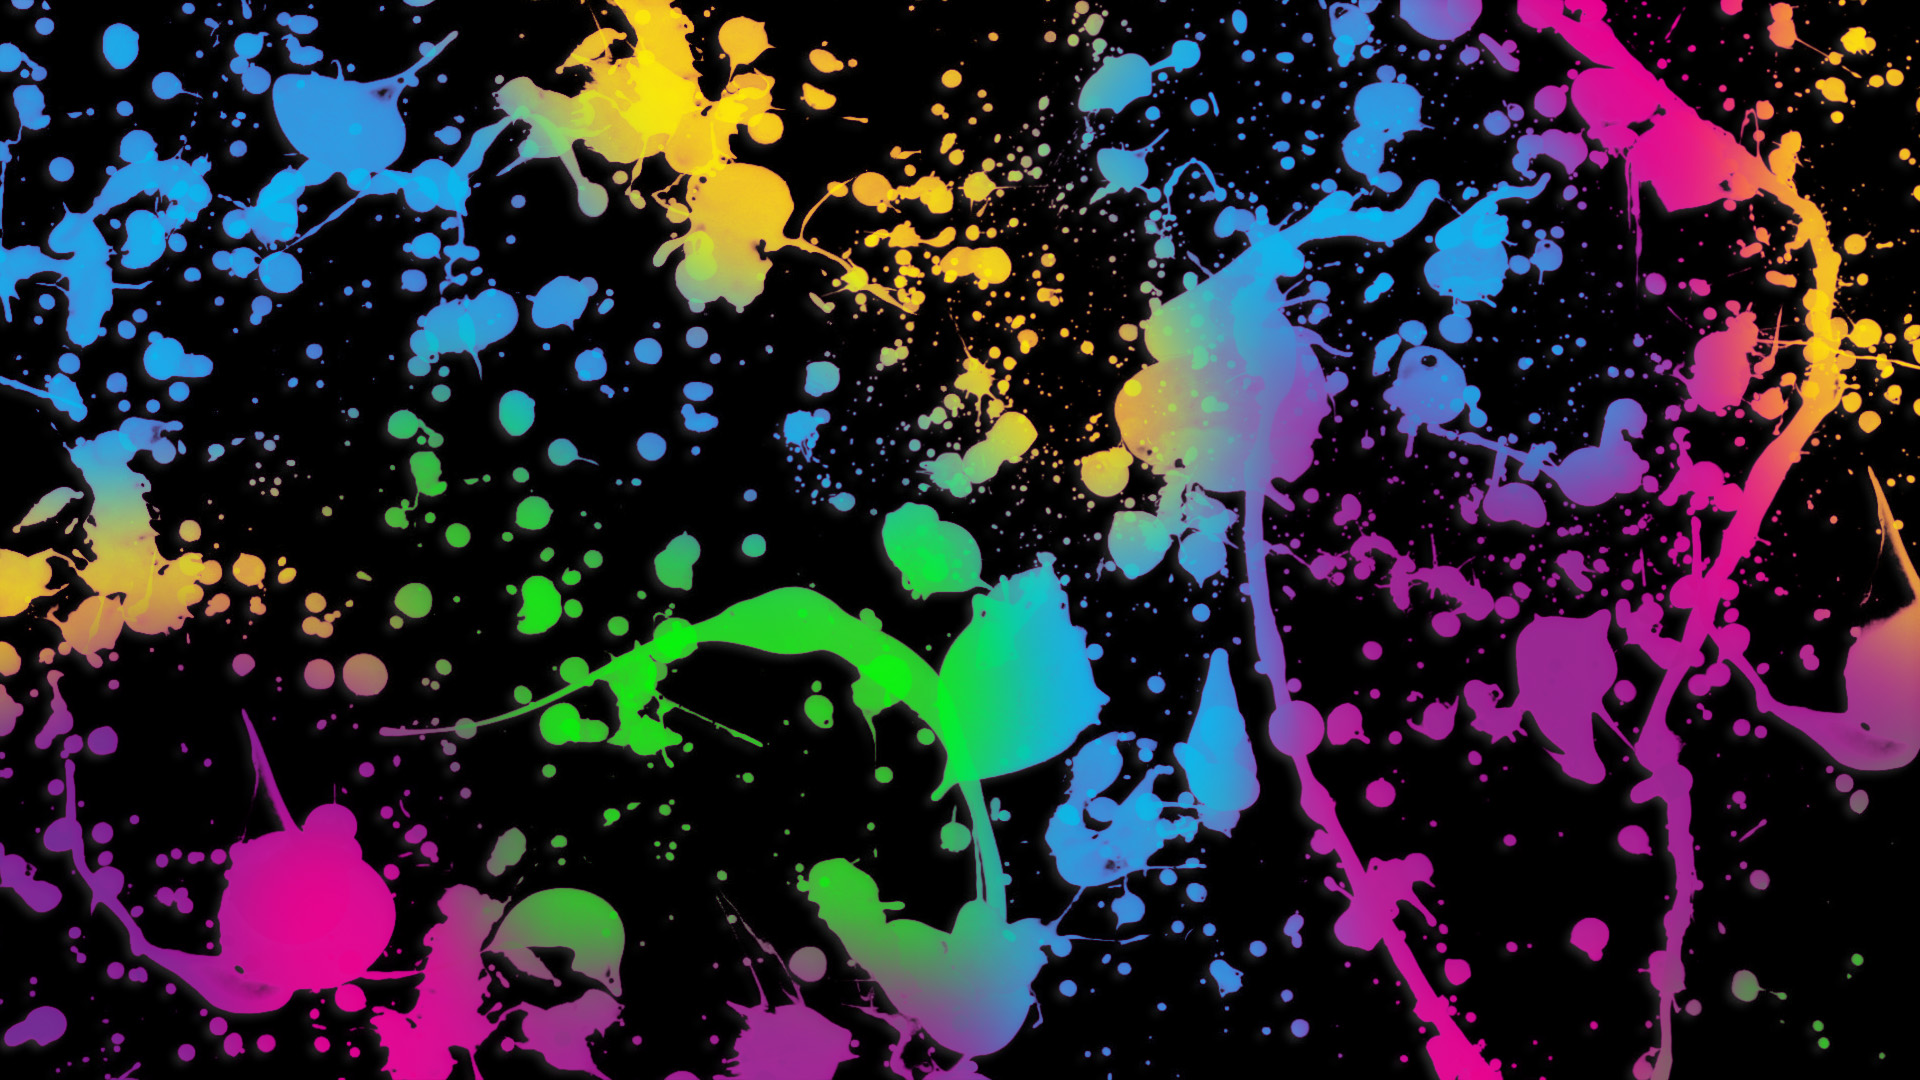 paint splatter background by bella beauty on deviantart